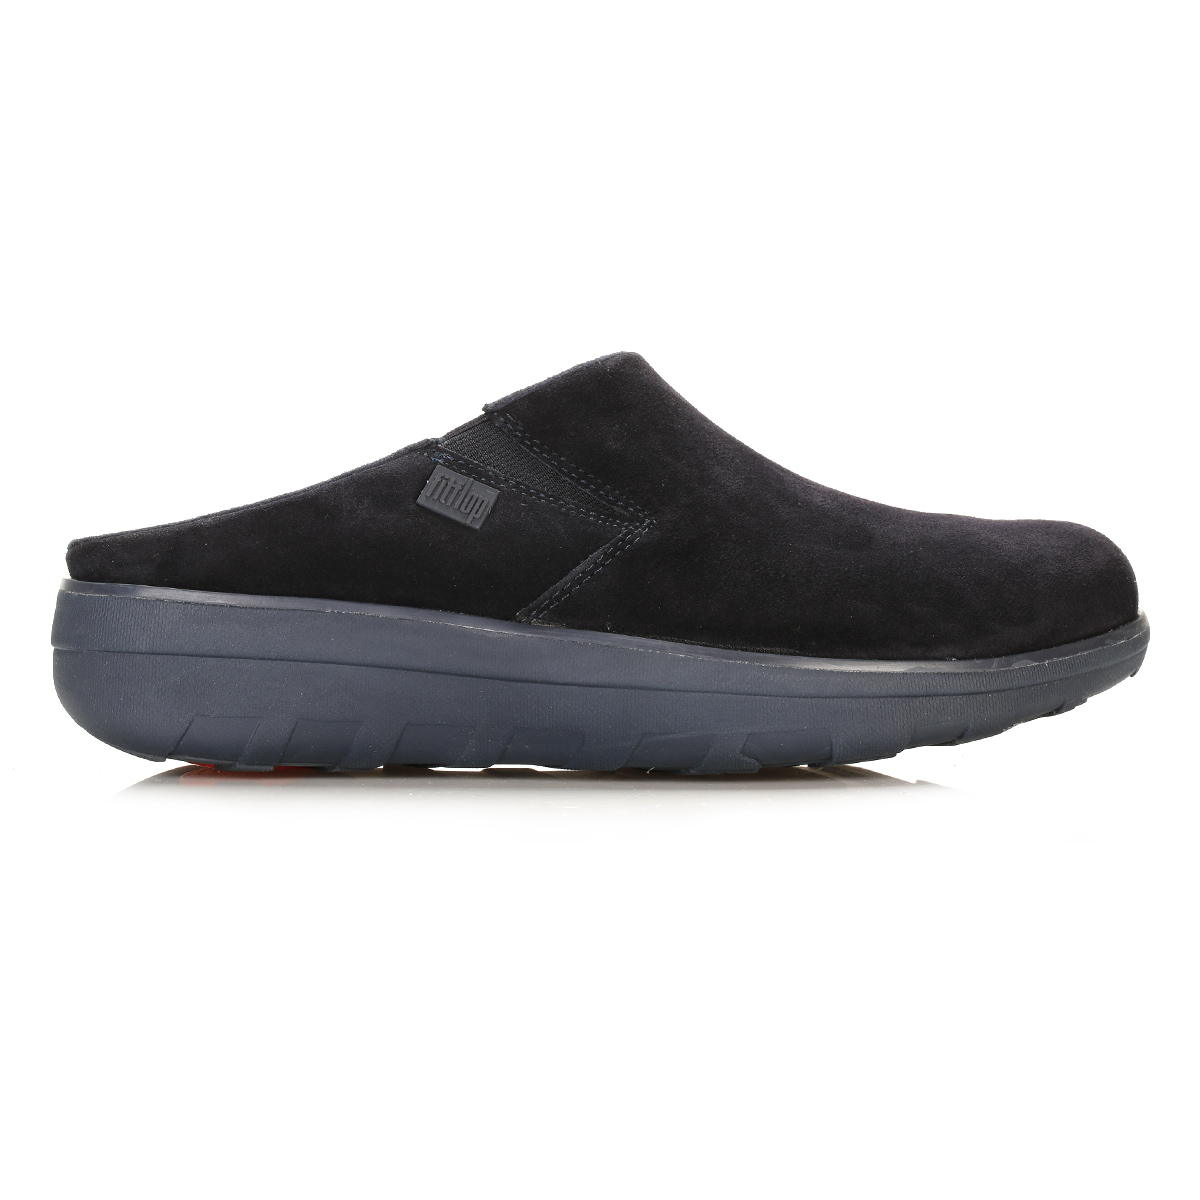 fitflop womens navy blue loaff suede clogs slip on shoes